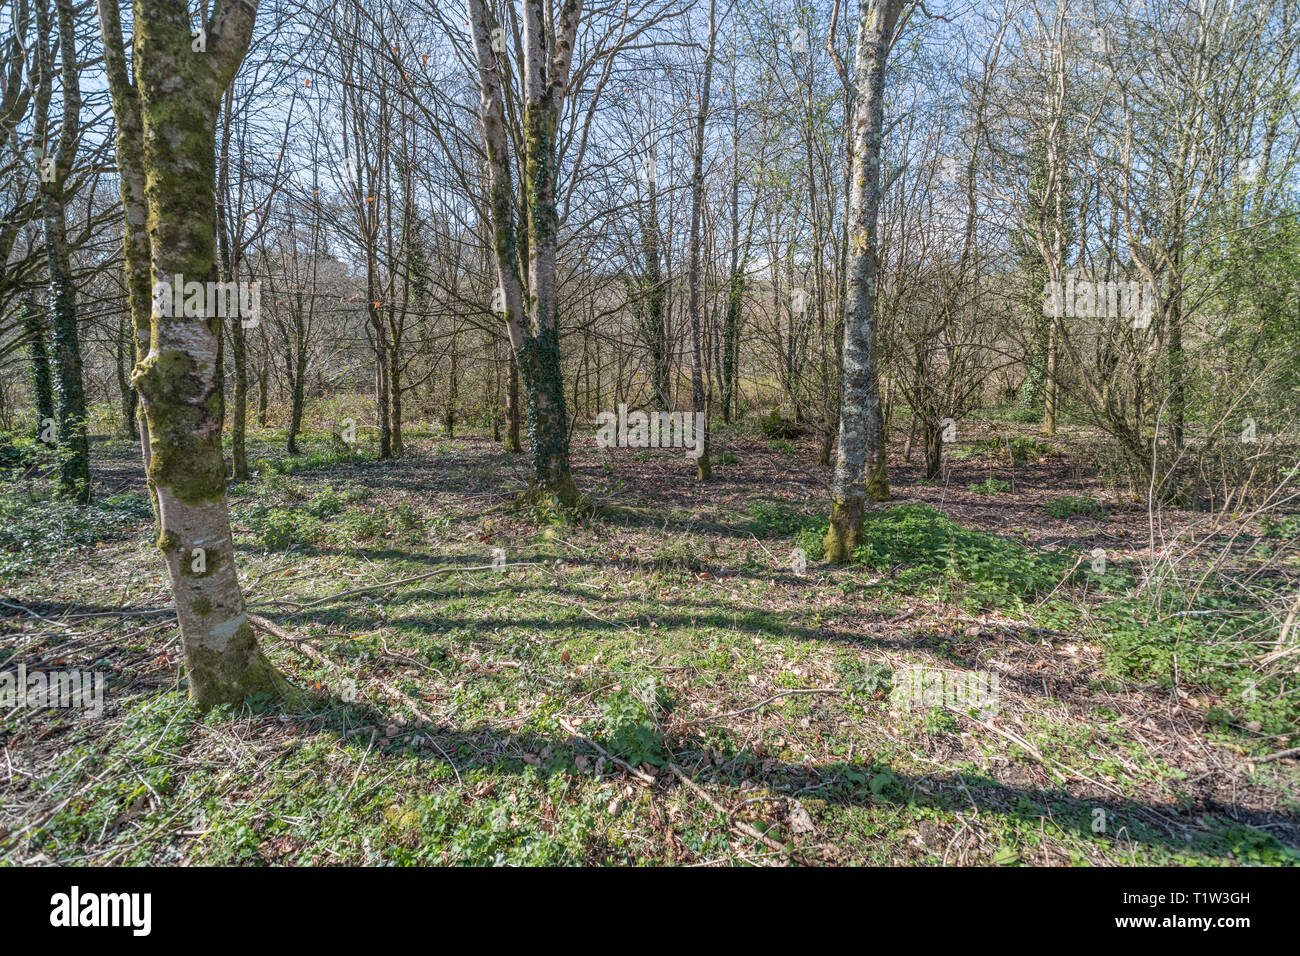 Open sunny woodland glade recently cleared of understory and brush. Stock Photo